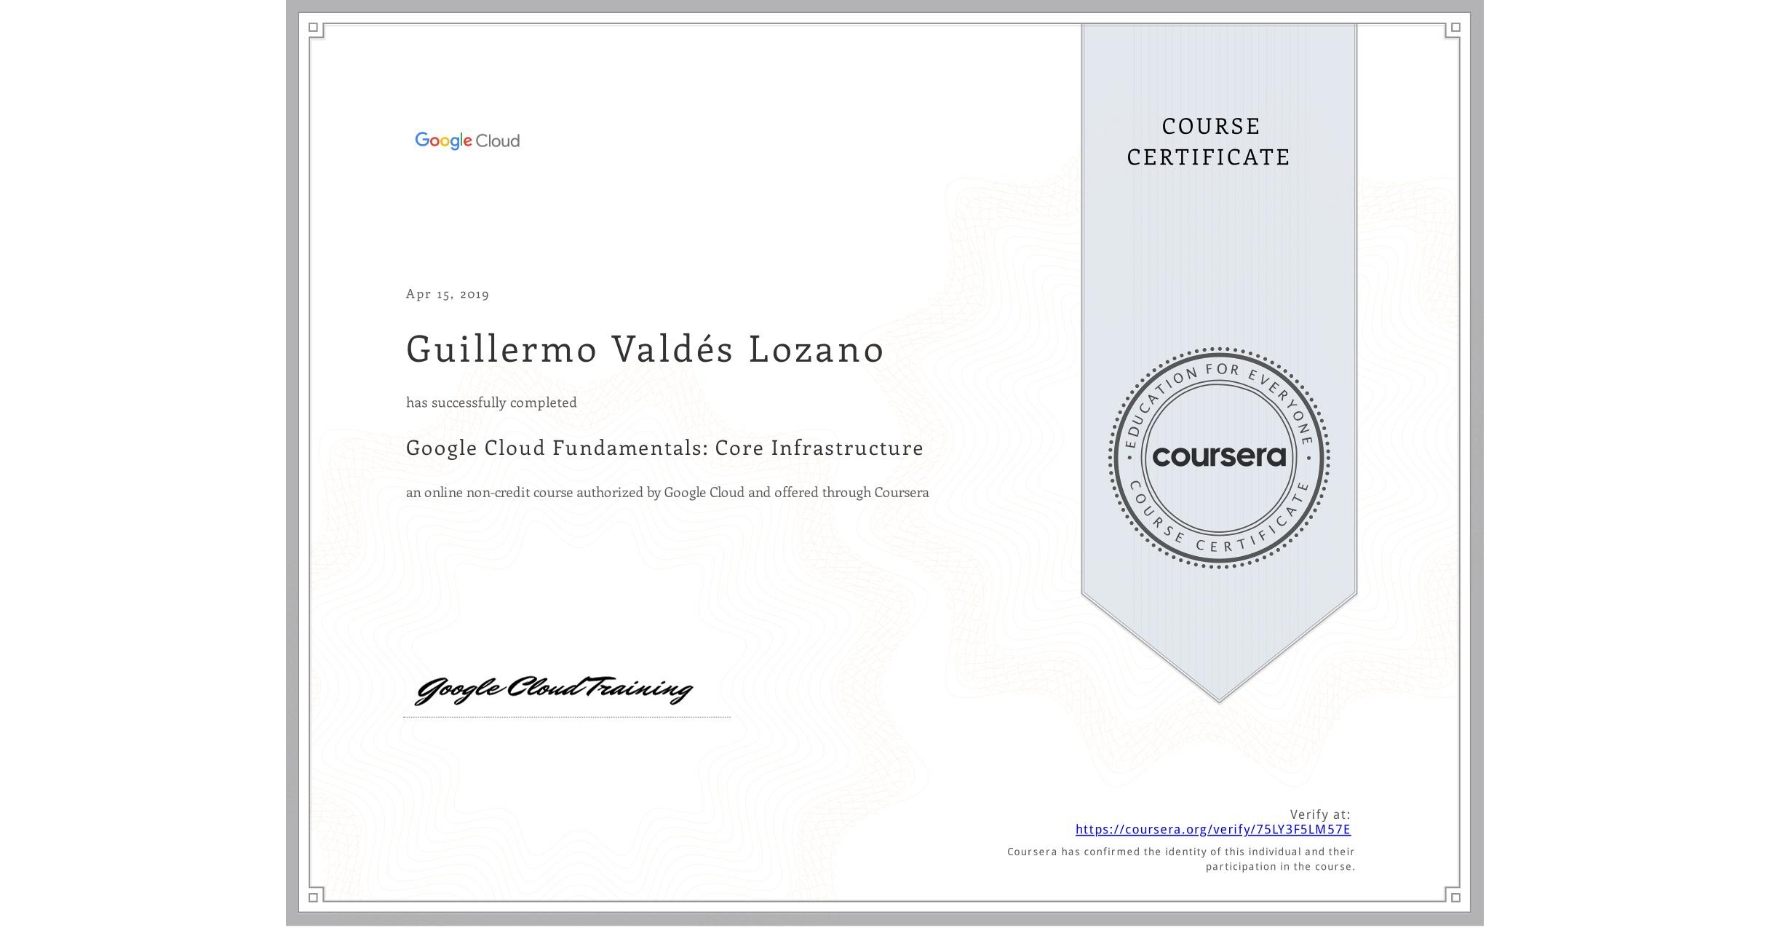 View certificate for Guillermo Valdés Lozano, Google Cloud Platform Fundamentals: Core Infrastructure, an online non-credit course authorized by Google Cloud and offered through Coursera